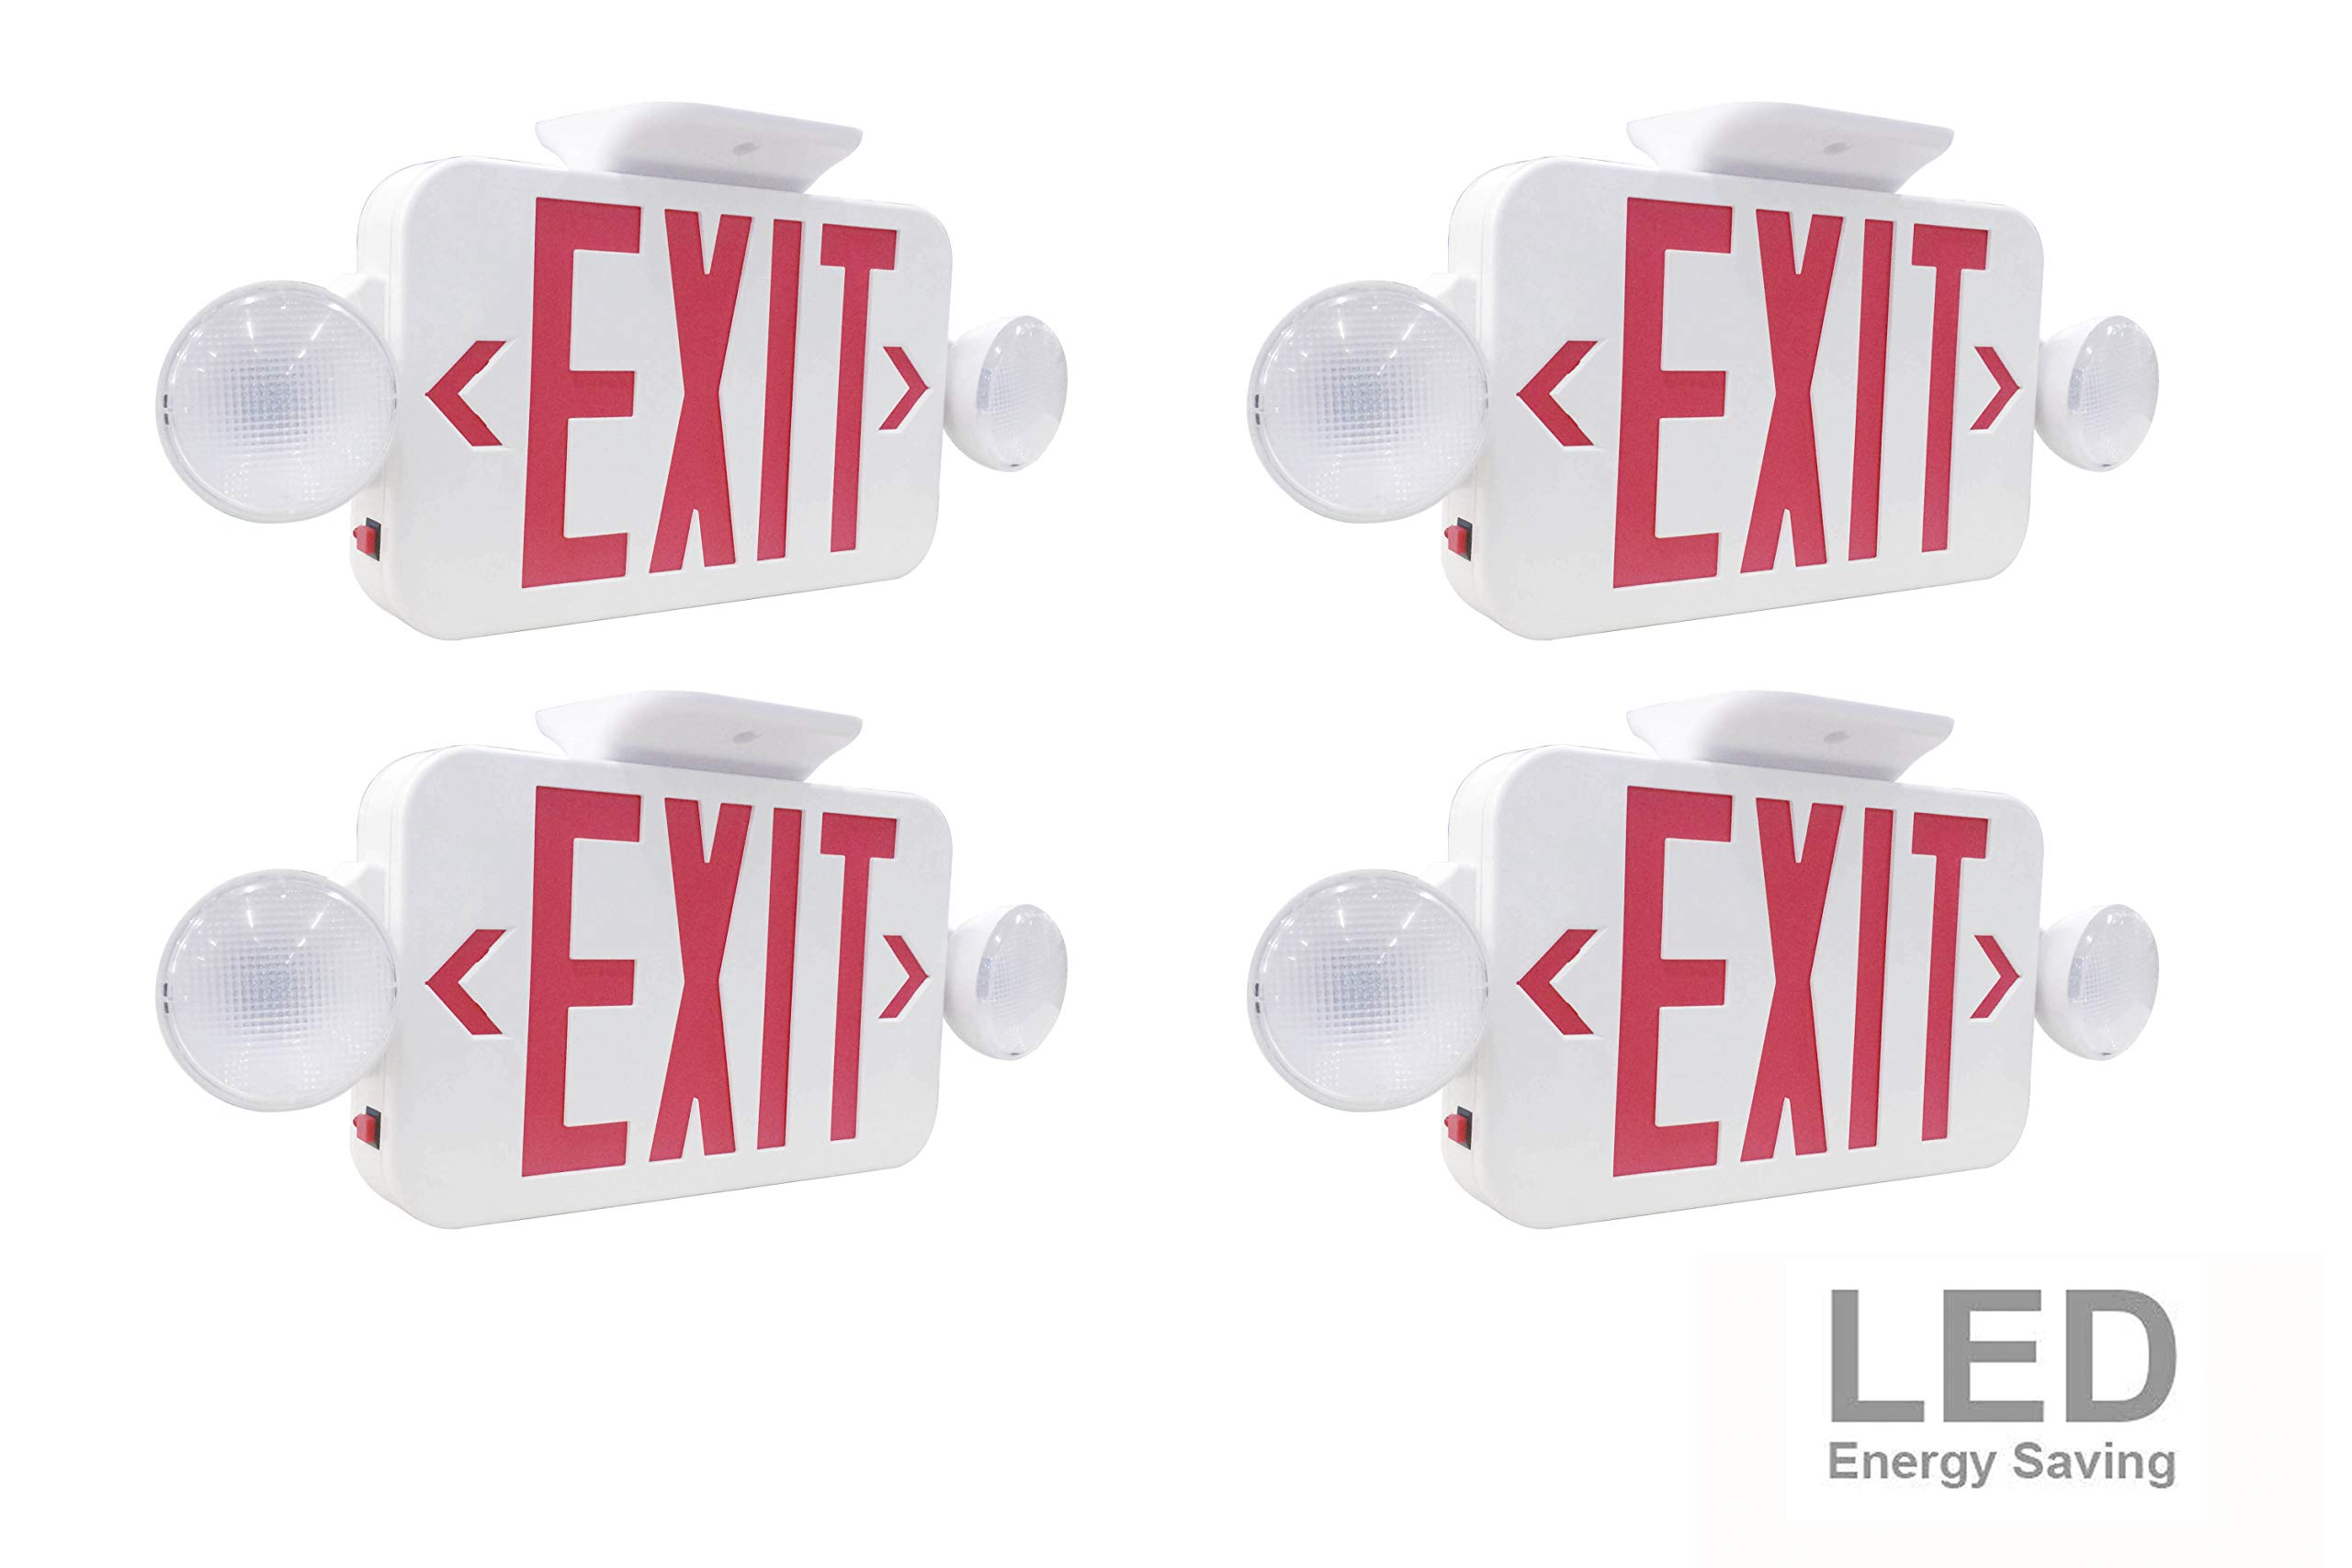 LIT-PaTH LED Combo Emergency EXIT Sign with 2 Adjustable Head Lights and Back Up Batteries- US Standard Red Letter Emergency Exit Lighting, UL 924 and CEC Qualified, 120-277 Voltage (4-Pack)